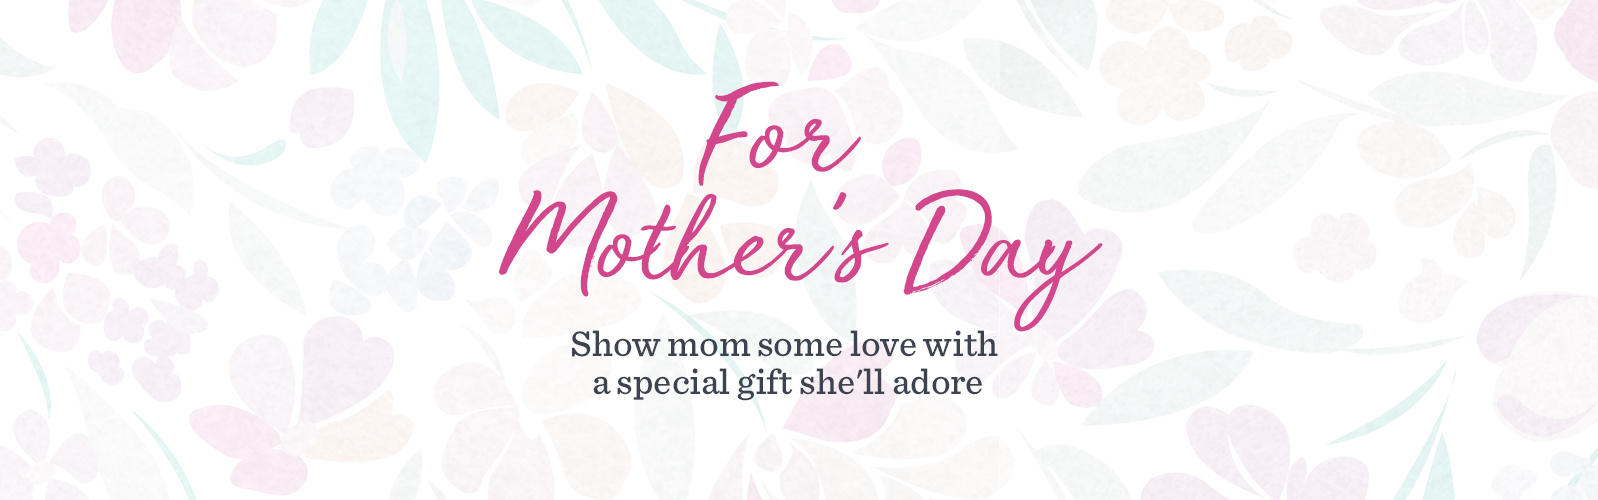 For Mother's Day  Show mom some love with a special gift she'll adore